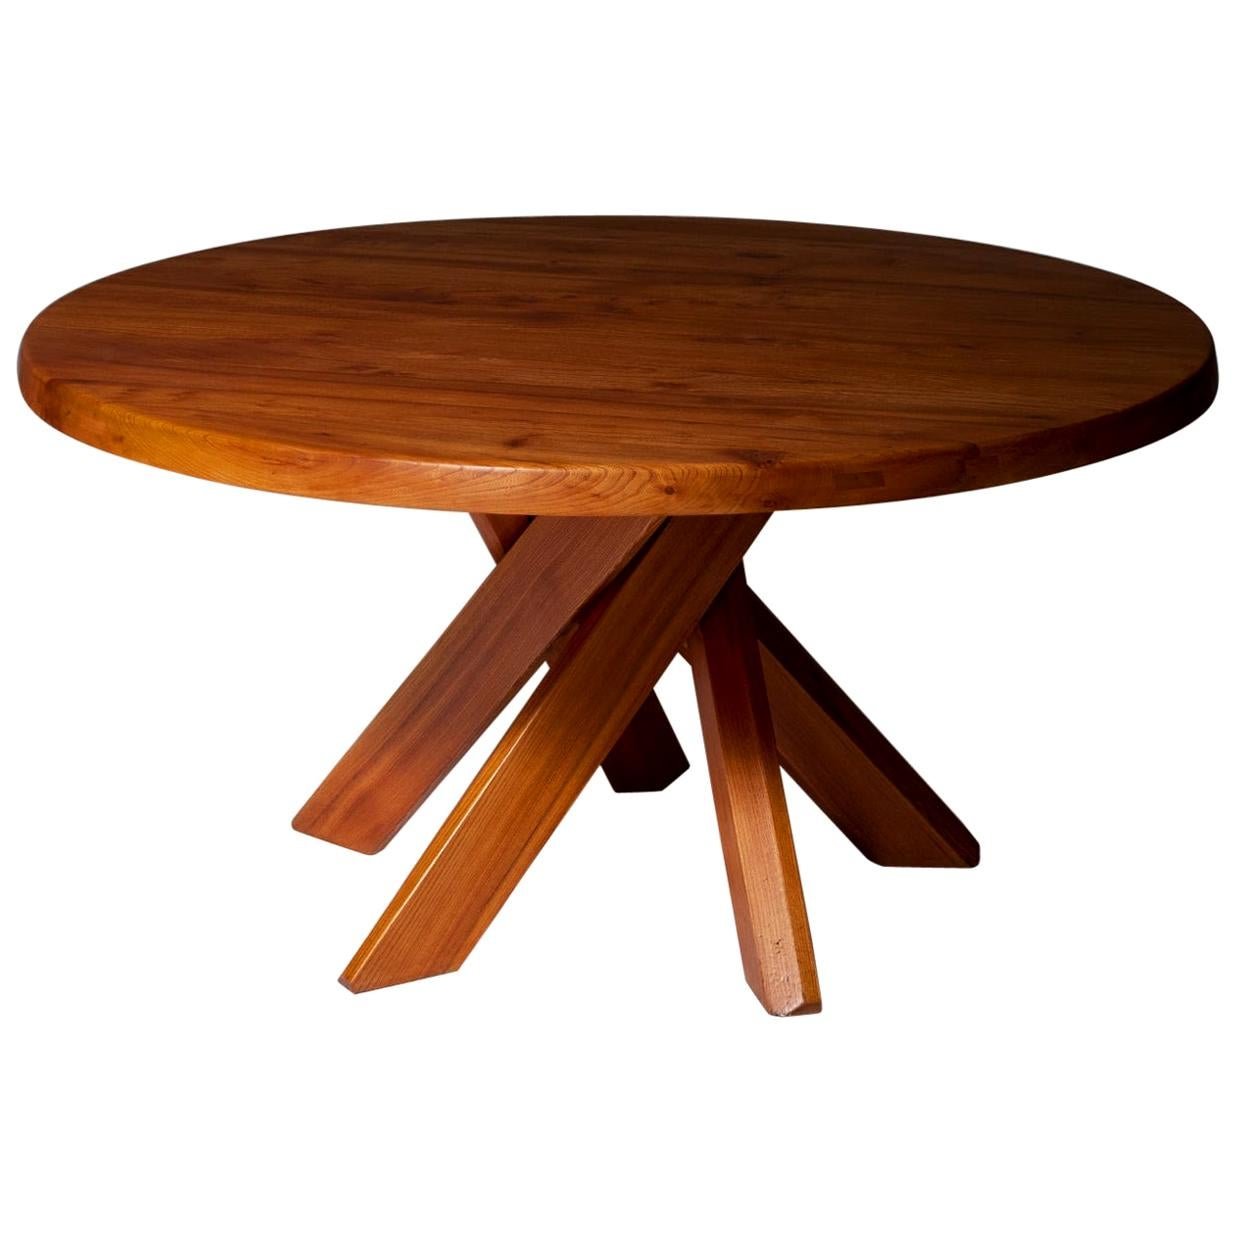 Pierre Chapo T21D Round Dining Table in Solid Elm